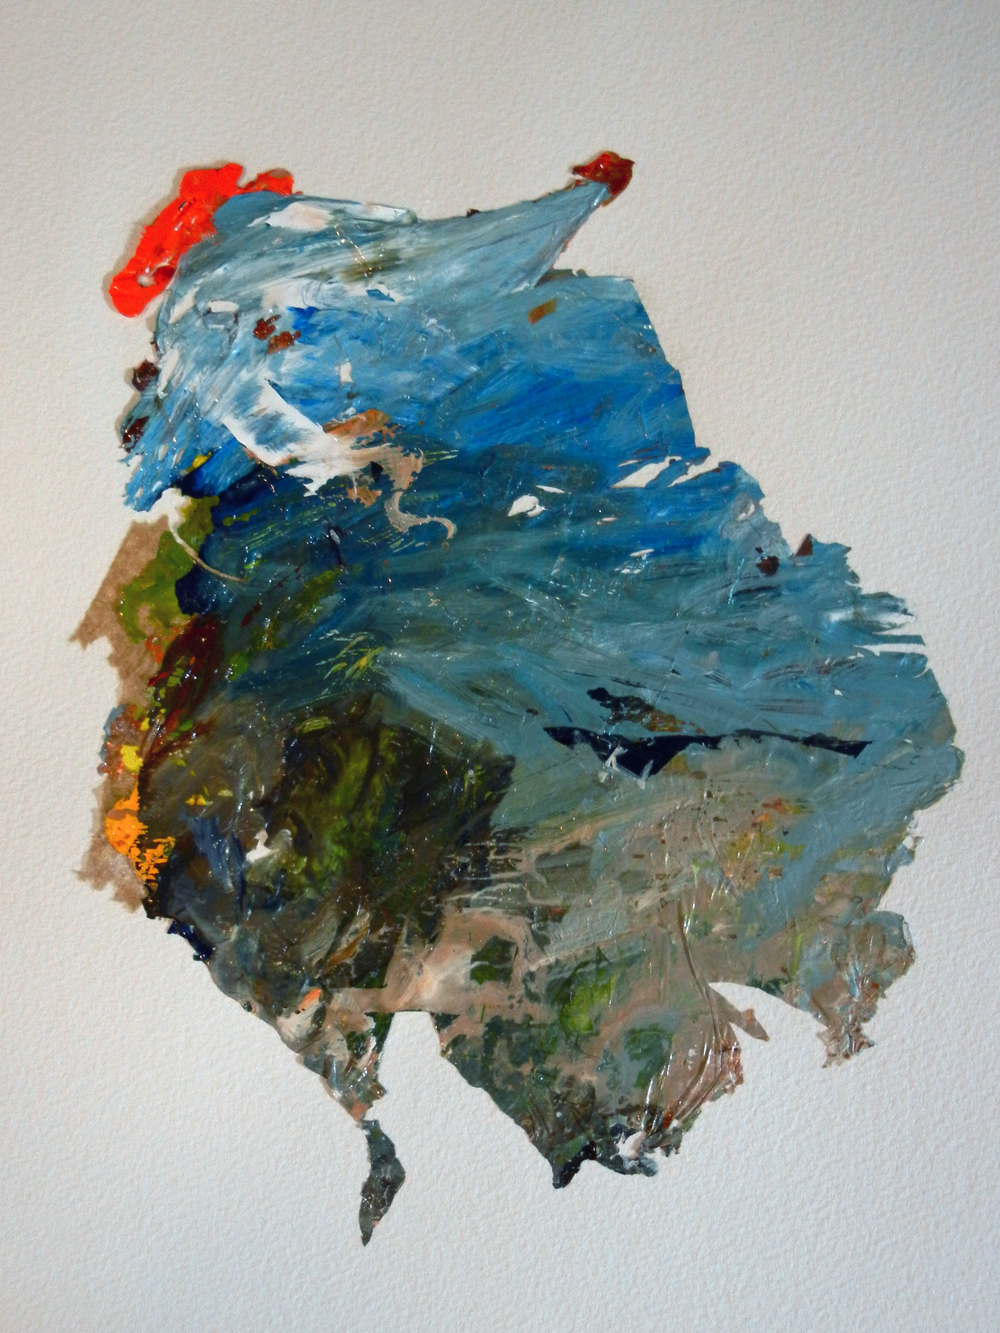 Woolhiser_Where_The_River_Meets_The_Sea_acrylic_on_paper_11x14-_2013.JPG